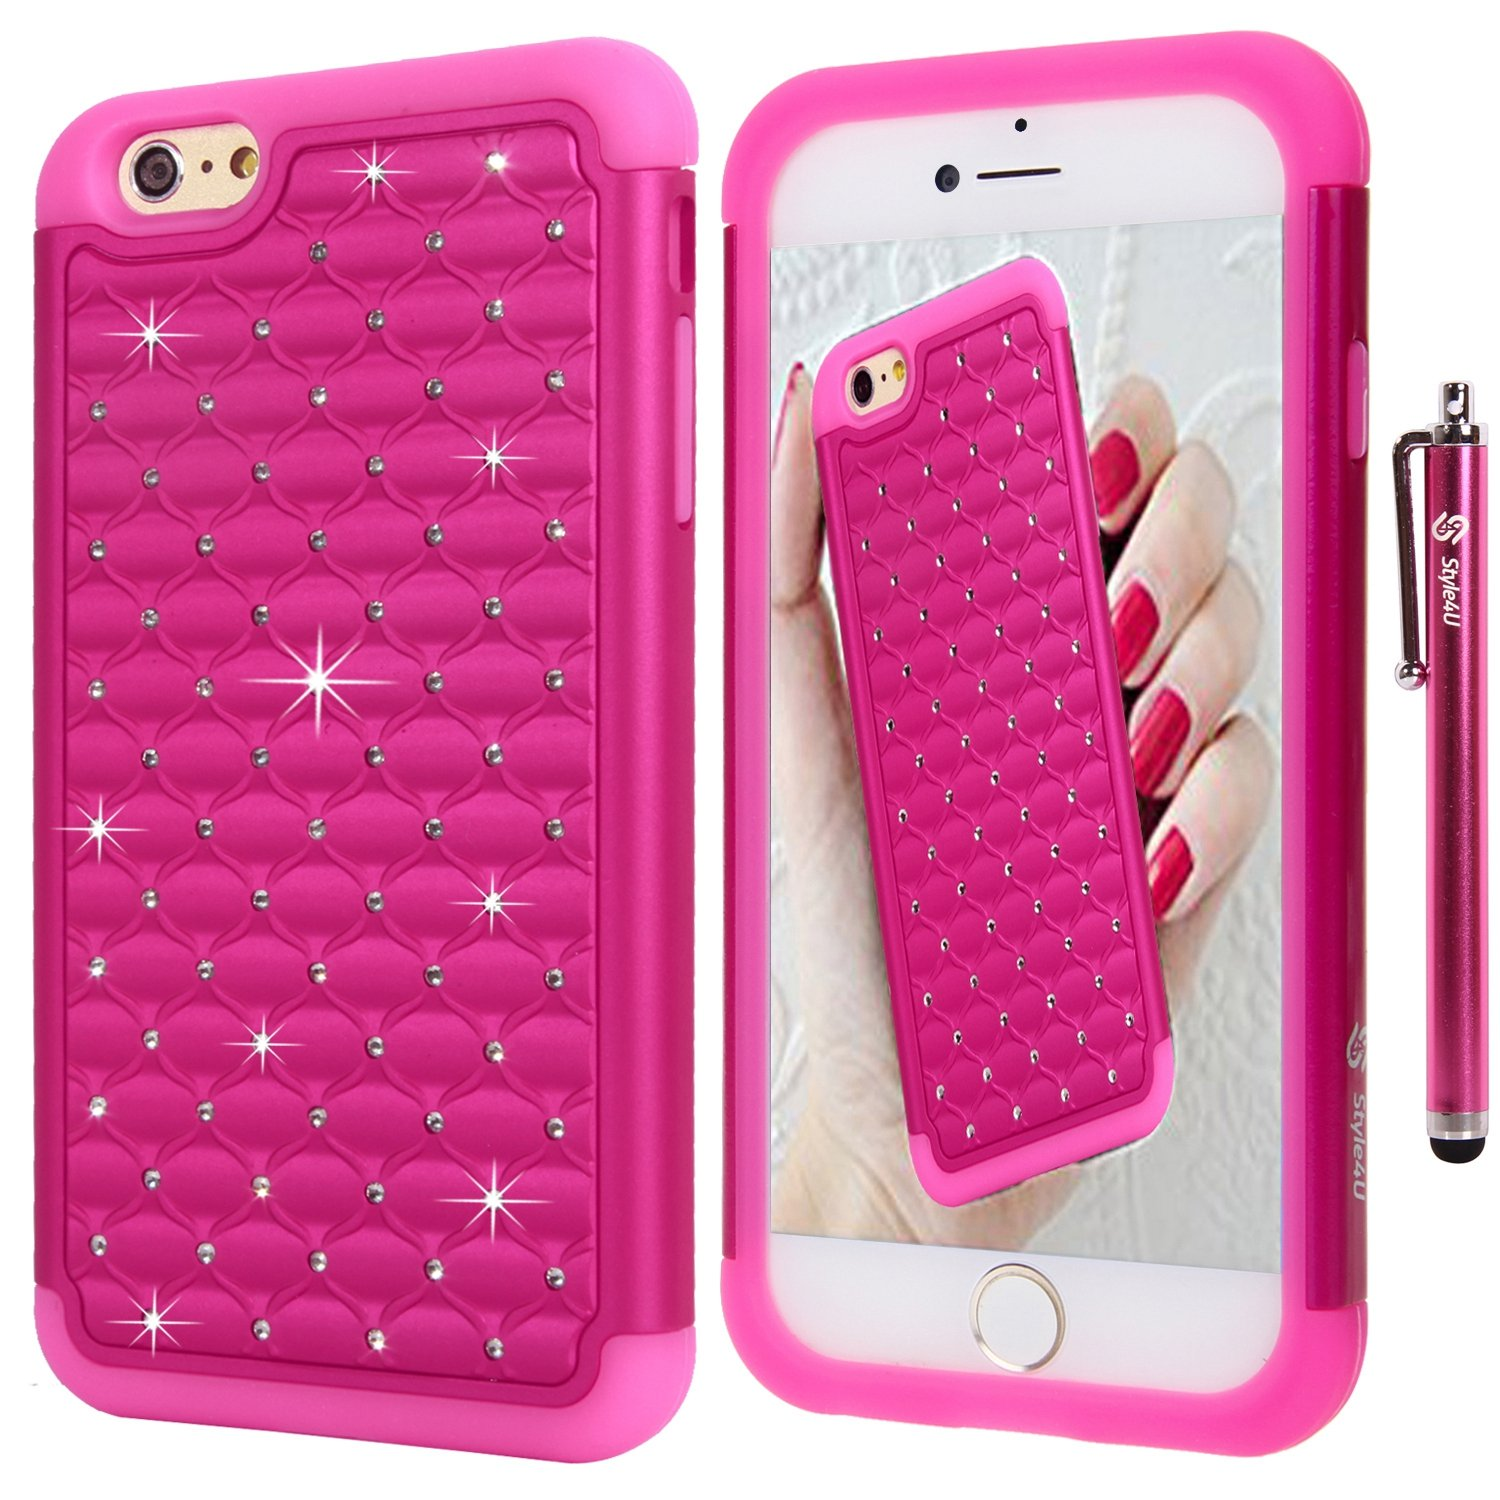 Style4U-Bling-Armor-Apple-iPhone-6-Plus-Case-w-HD-Screen-Protector-amp-Stylus